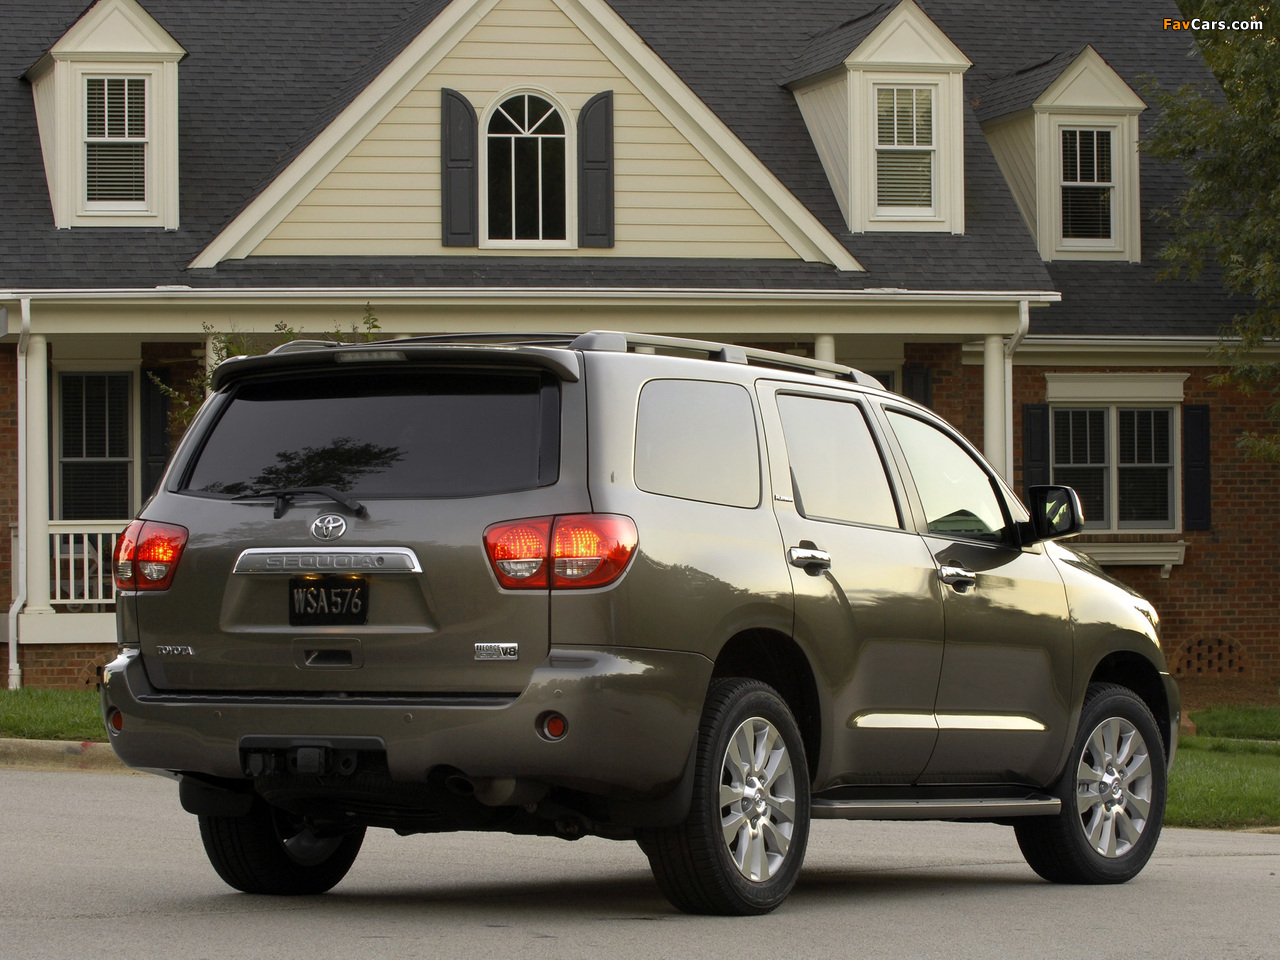 Toyota Sequoia Limited 2007 images (1280 x 960)